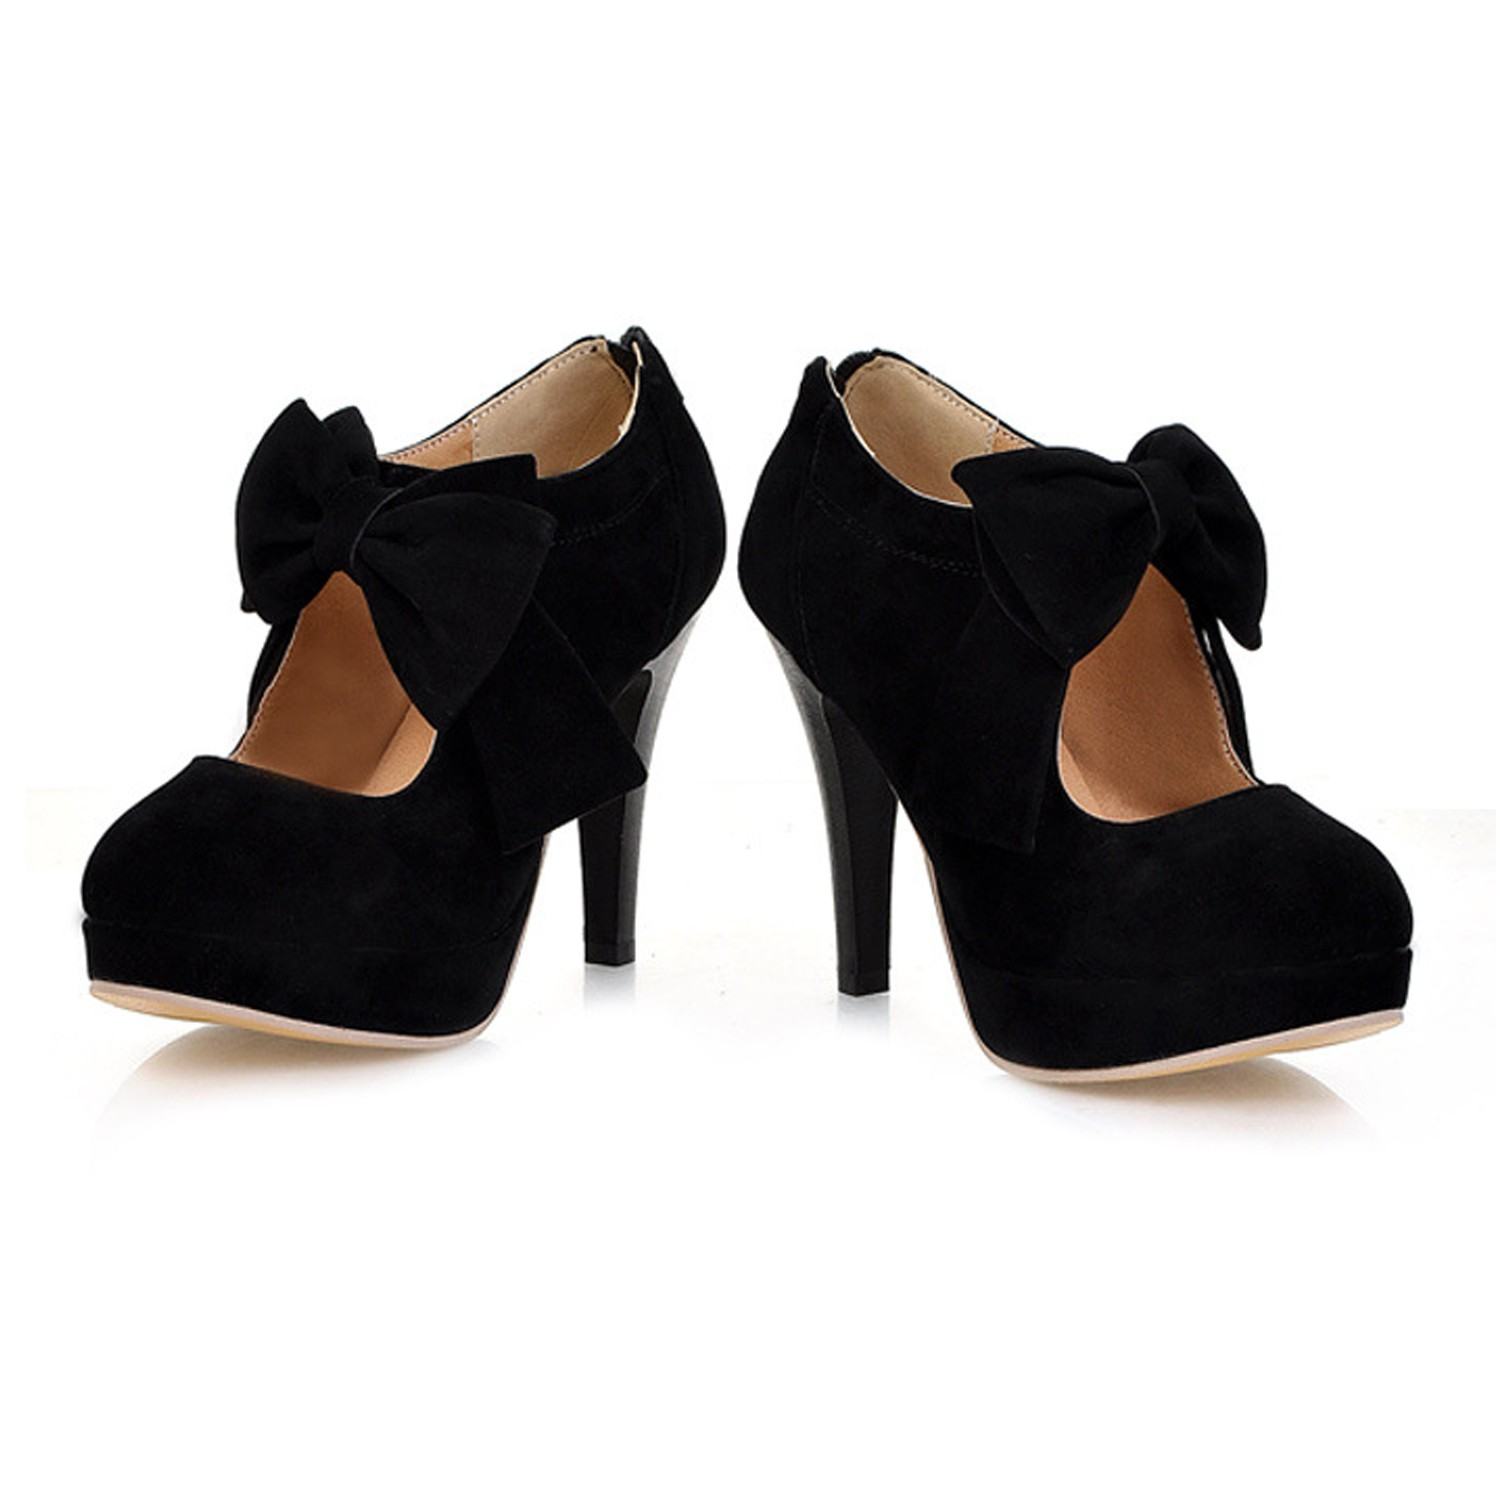 suede pumps prom womens high heel shoes size 2 3 4 5